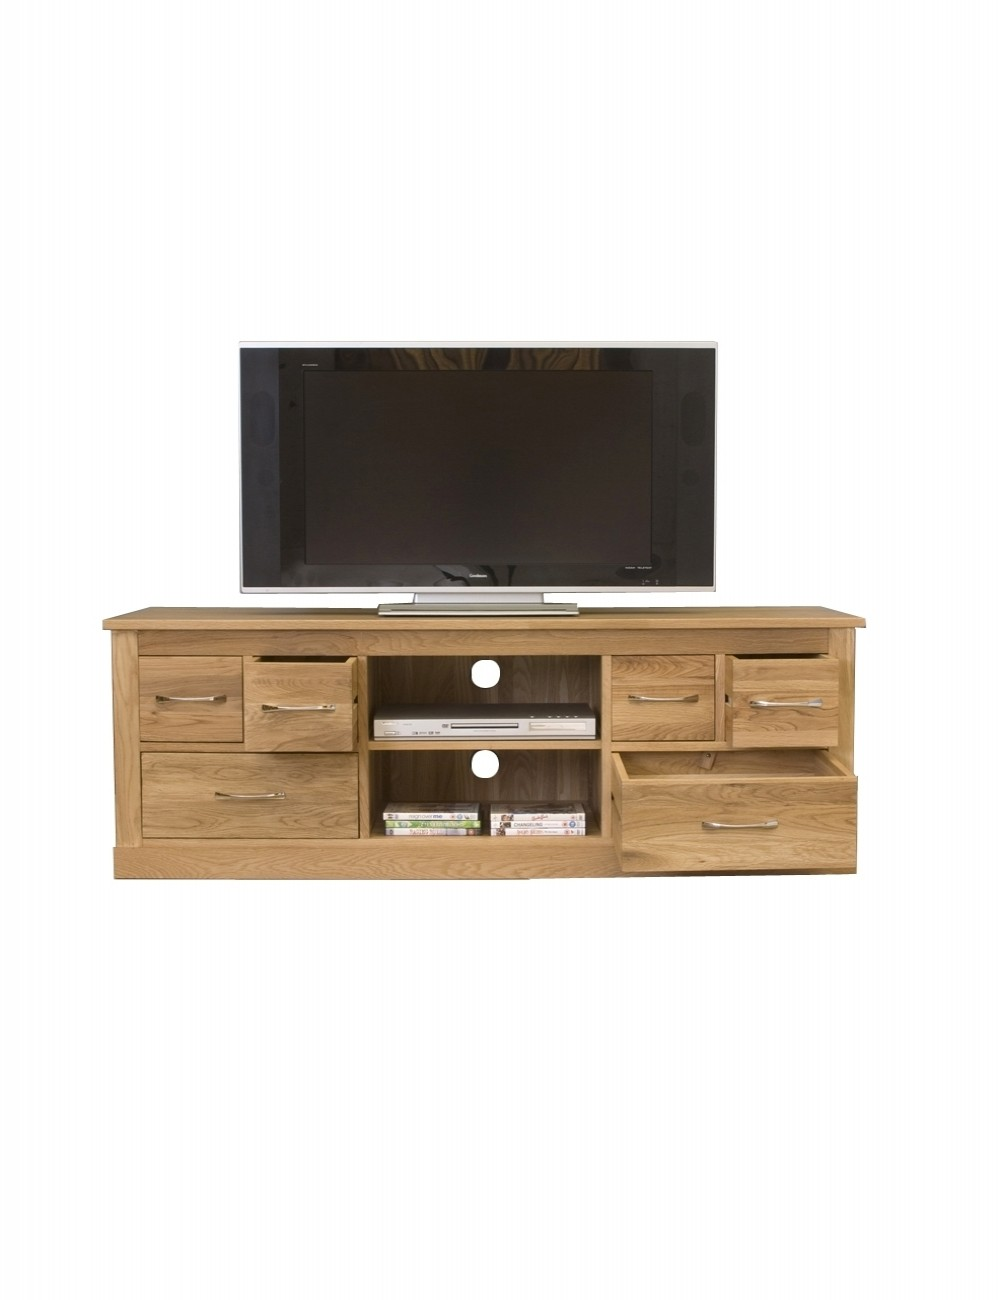 Baumhaus mobel oak widescreen tv cabinet cor09b 121 tv for Mobel